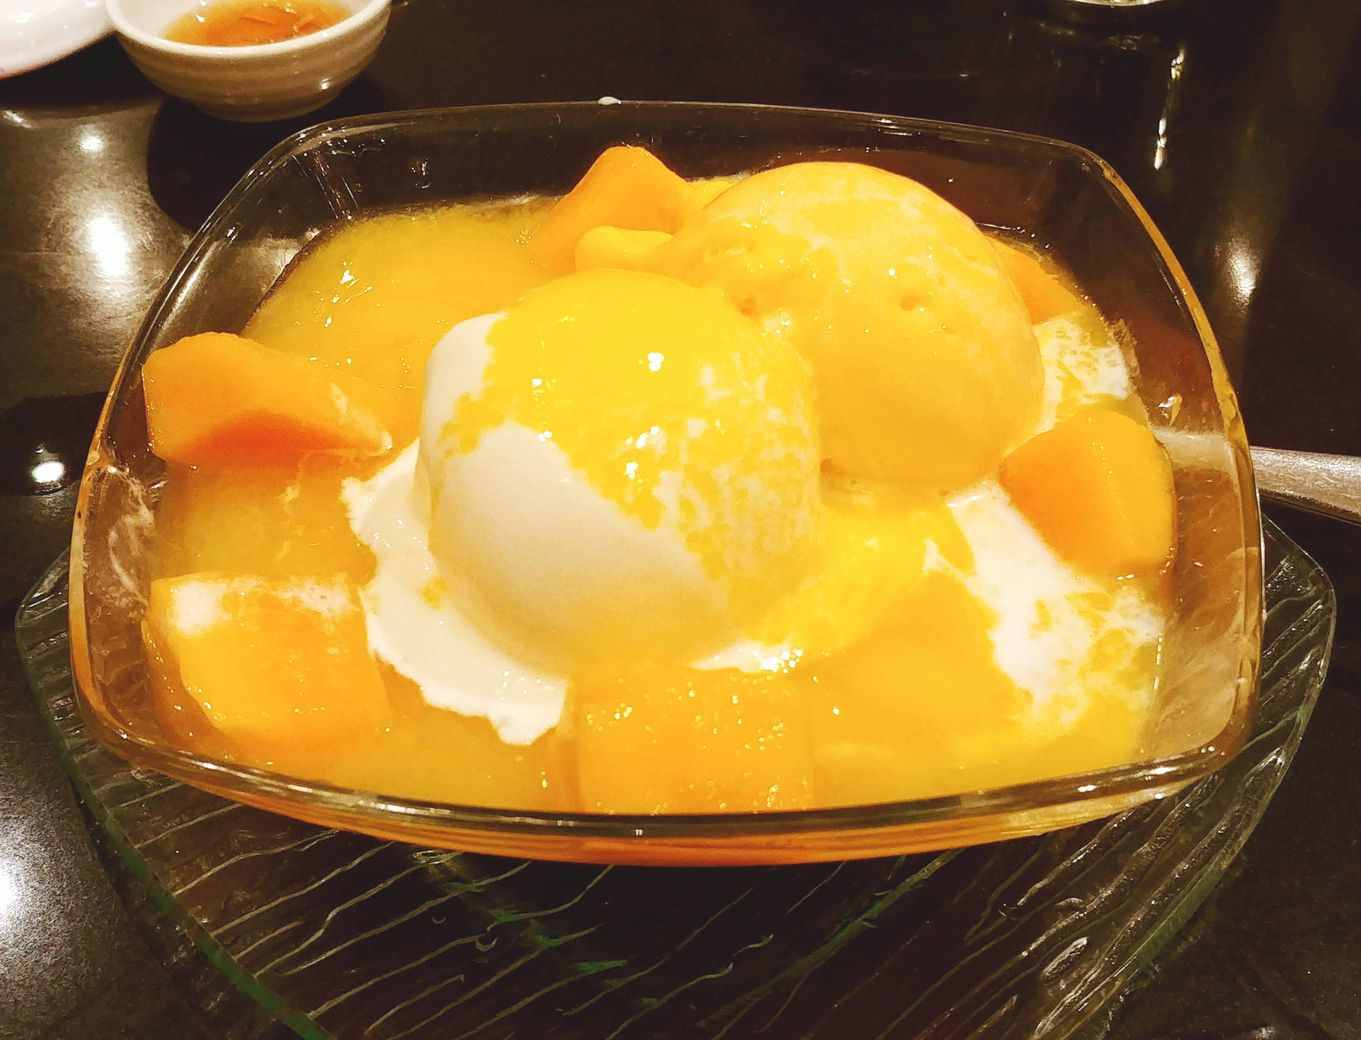 Lugang Cafe's Milked Custard with Mango